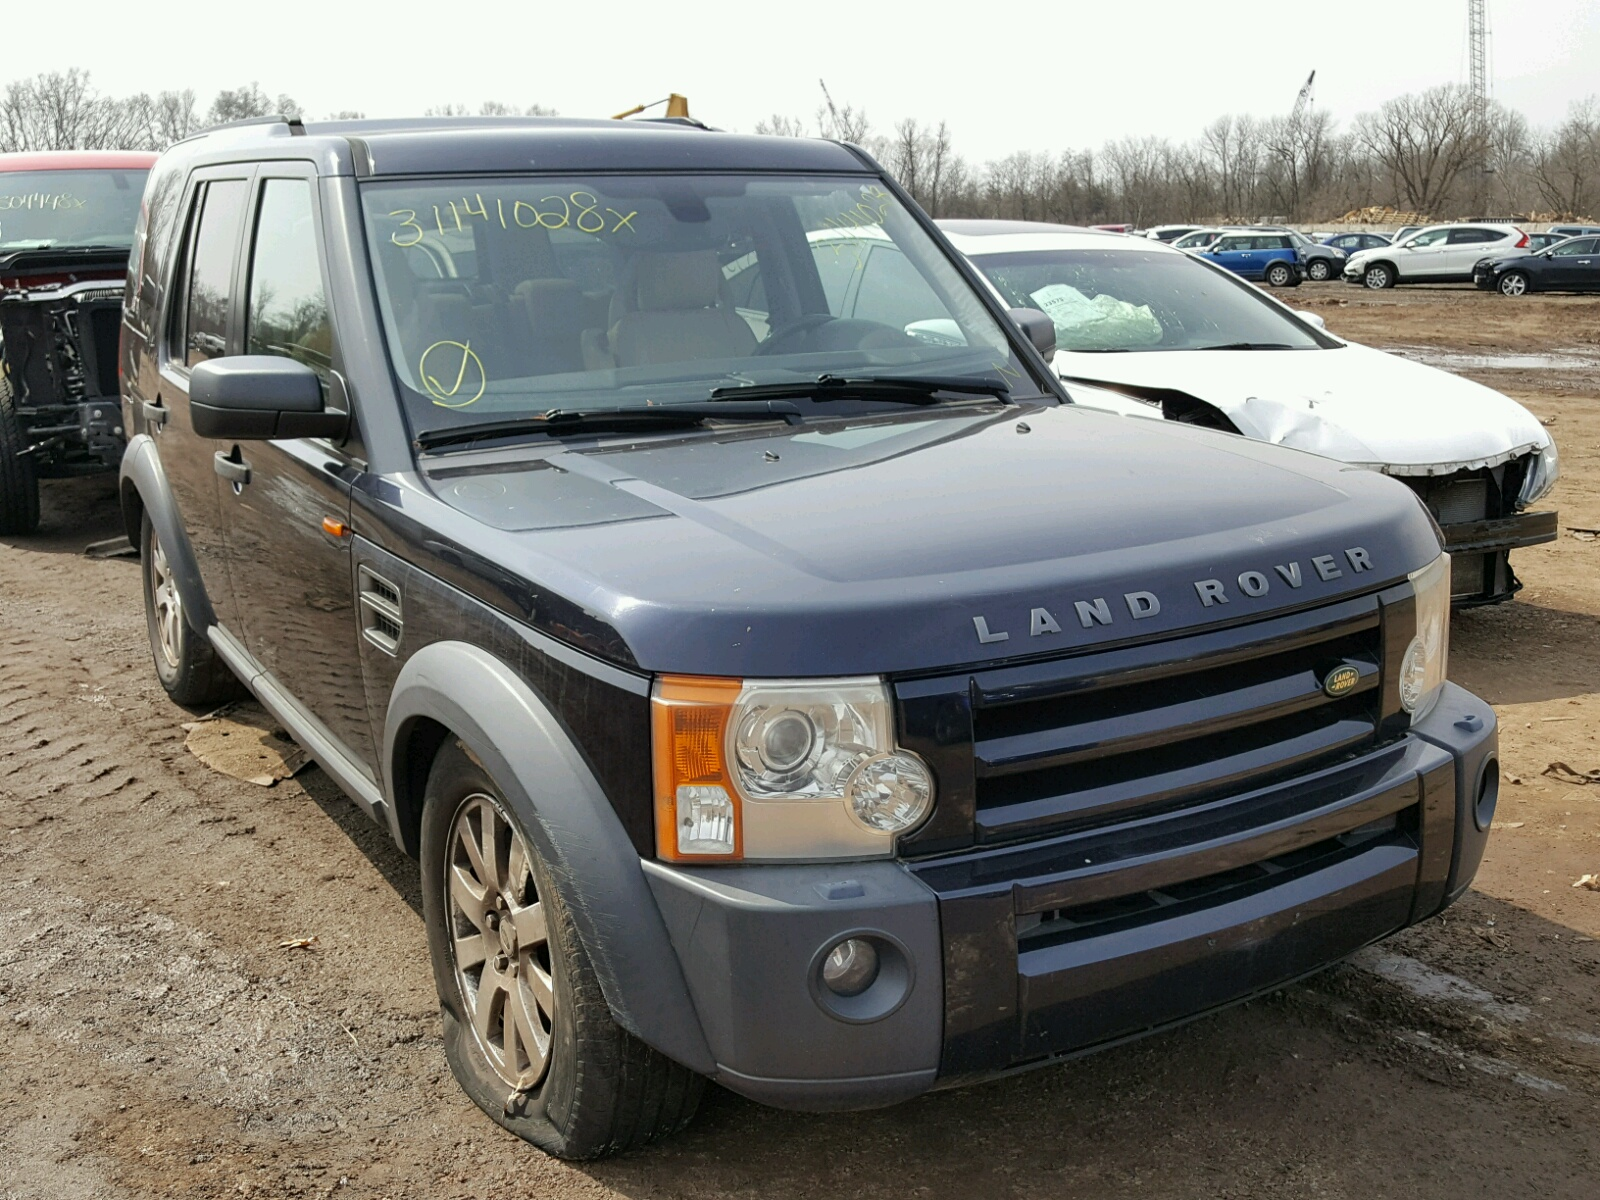 sale near landrover hse htm rover land for stock l used c marietta main ga